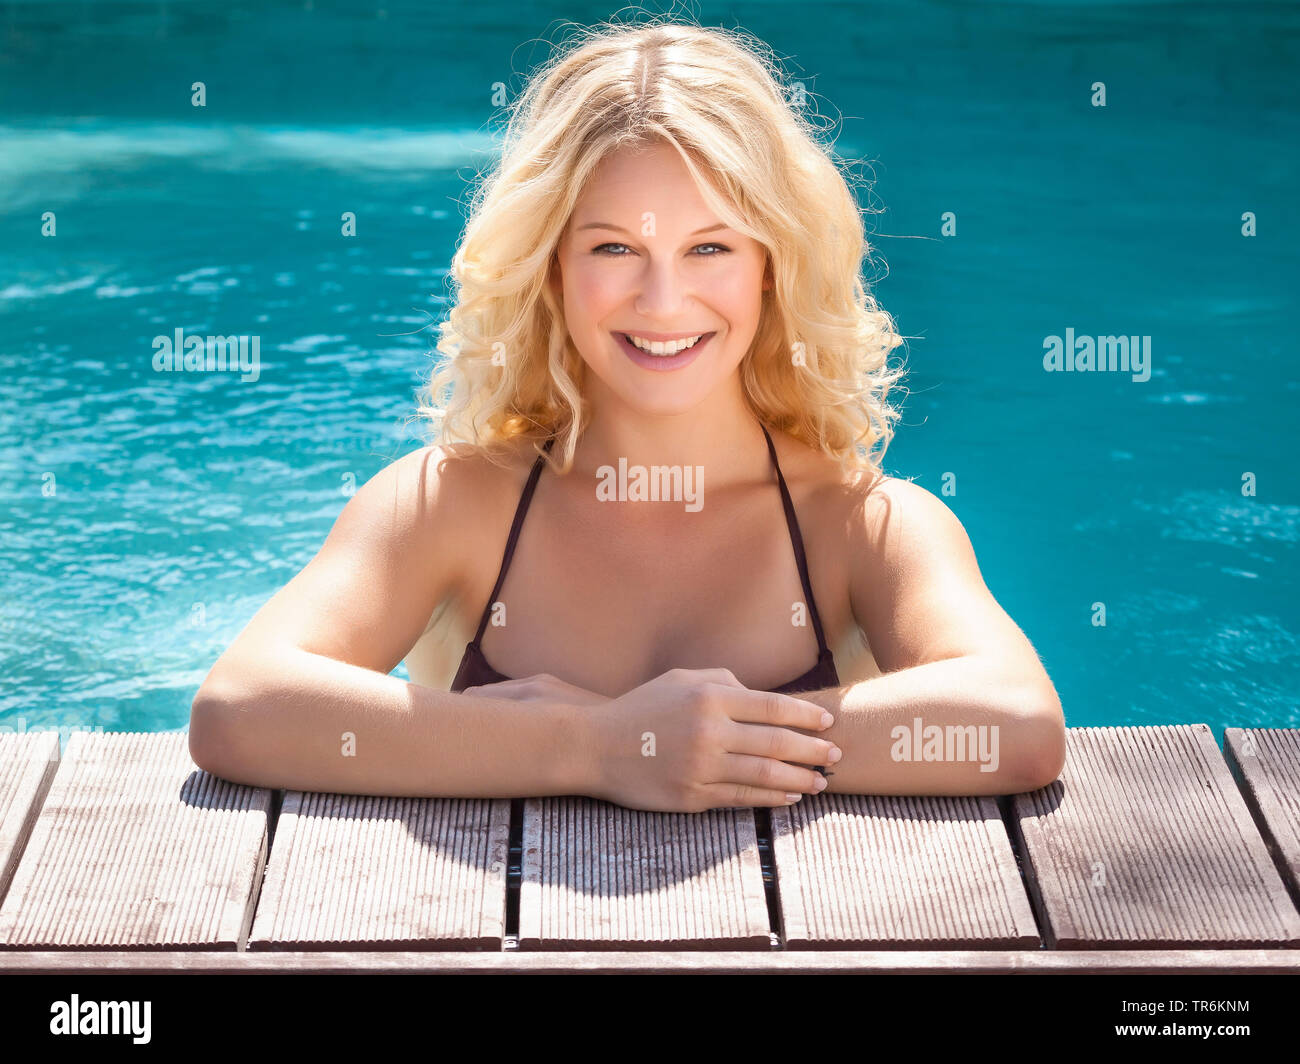 junge huebsche Blondine am Beckenrand eines Swimmingpools, Deutschland | young blond woman in a swimming pool, Germany | BLWS486389.jpg [ (c) blickwin - Stock Image